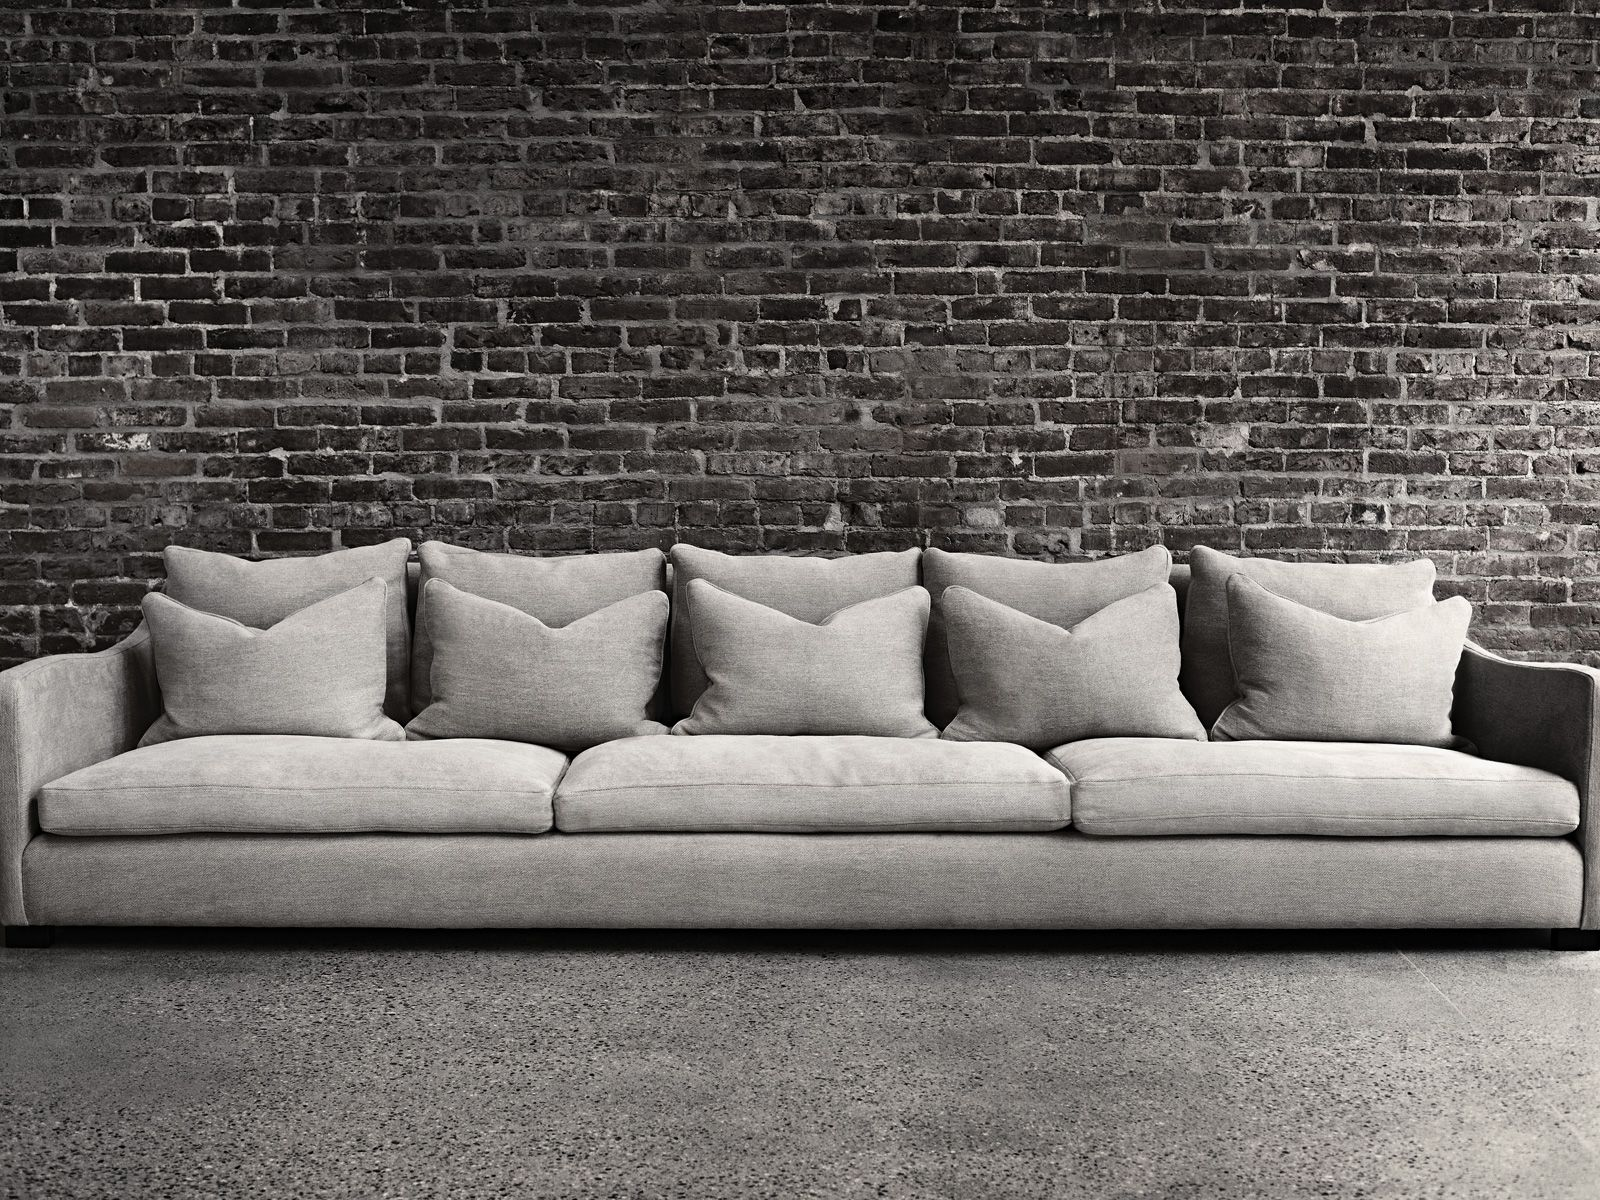 Montauk Sofa I Lust Over This Sofa. Love The Skinny Arms